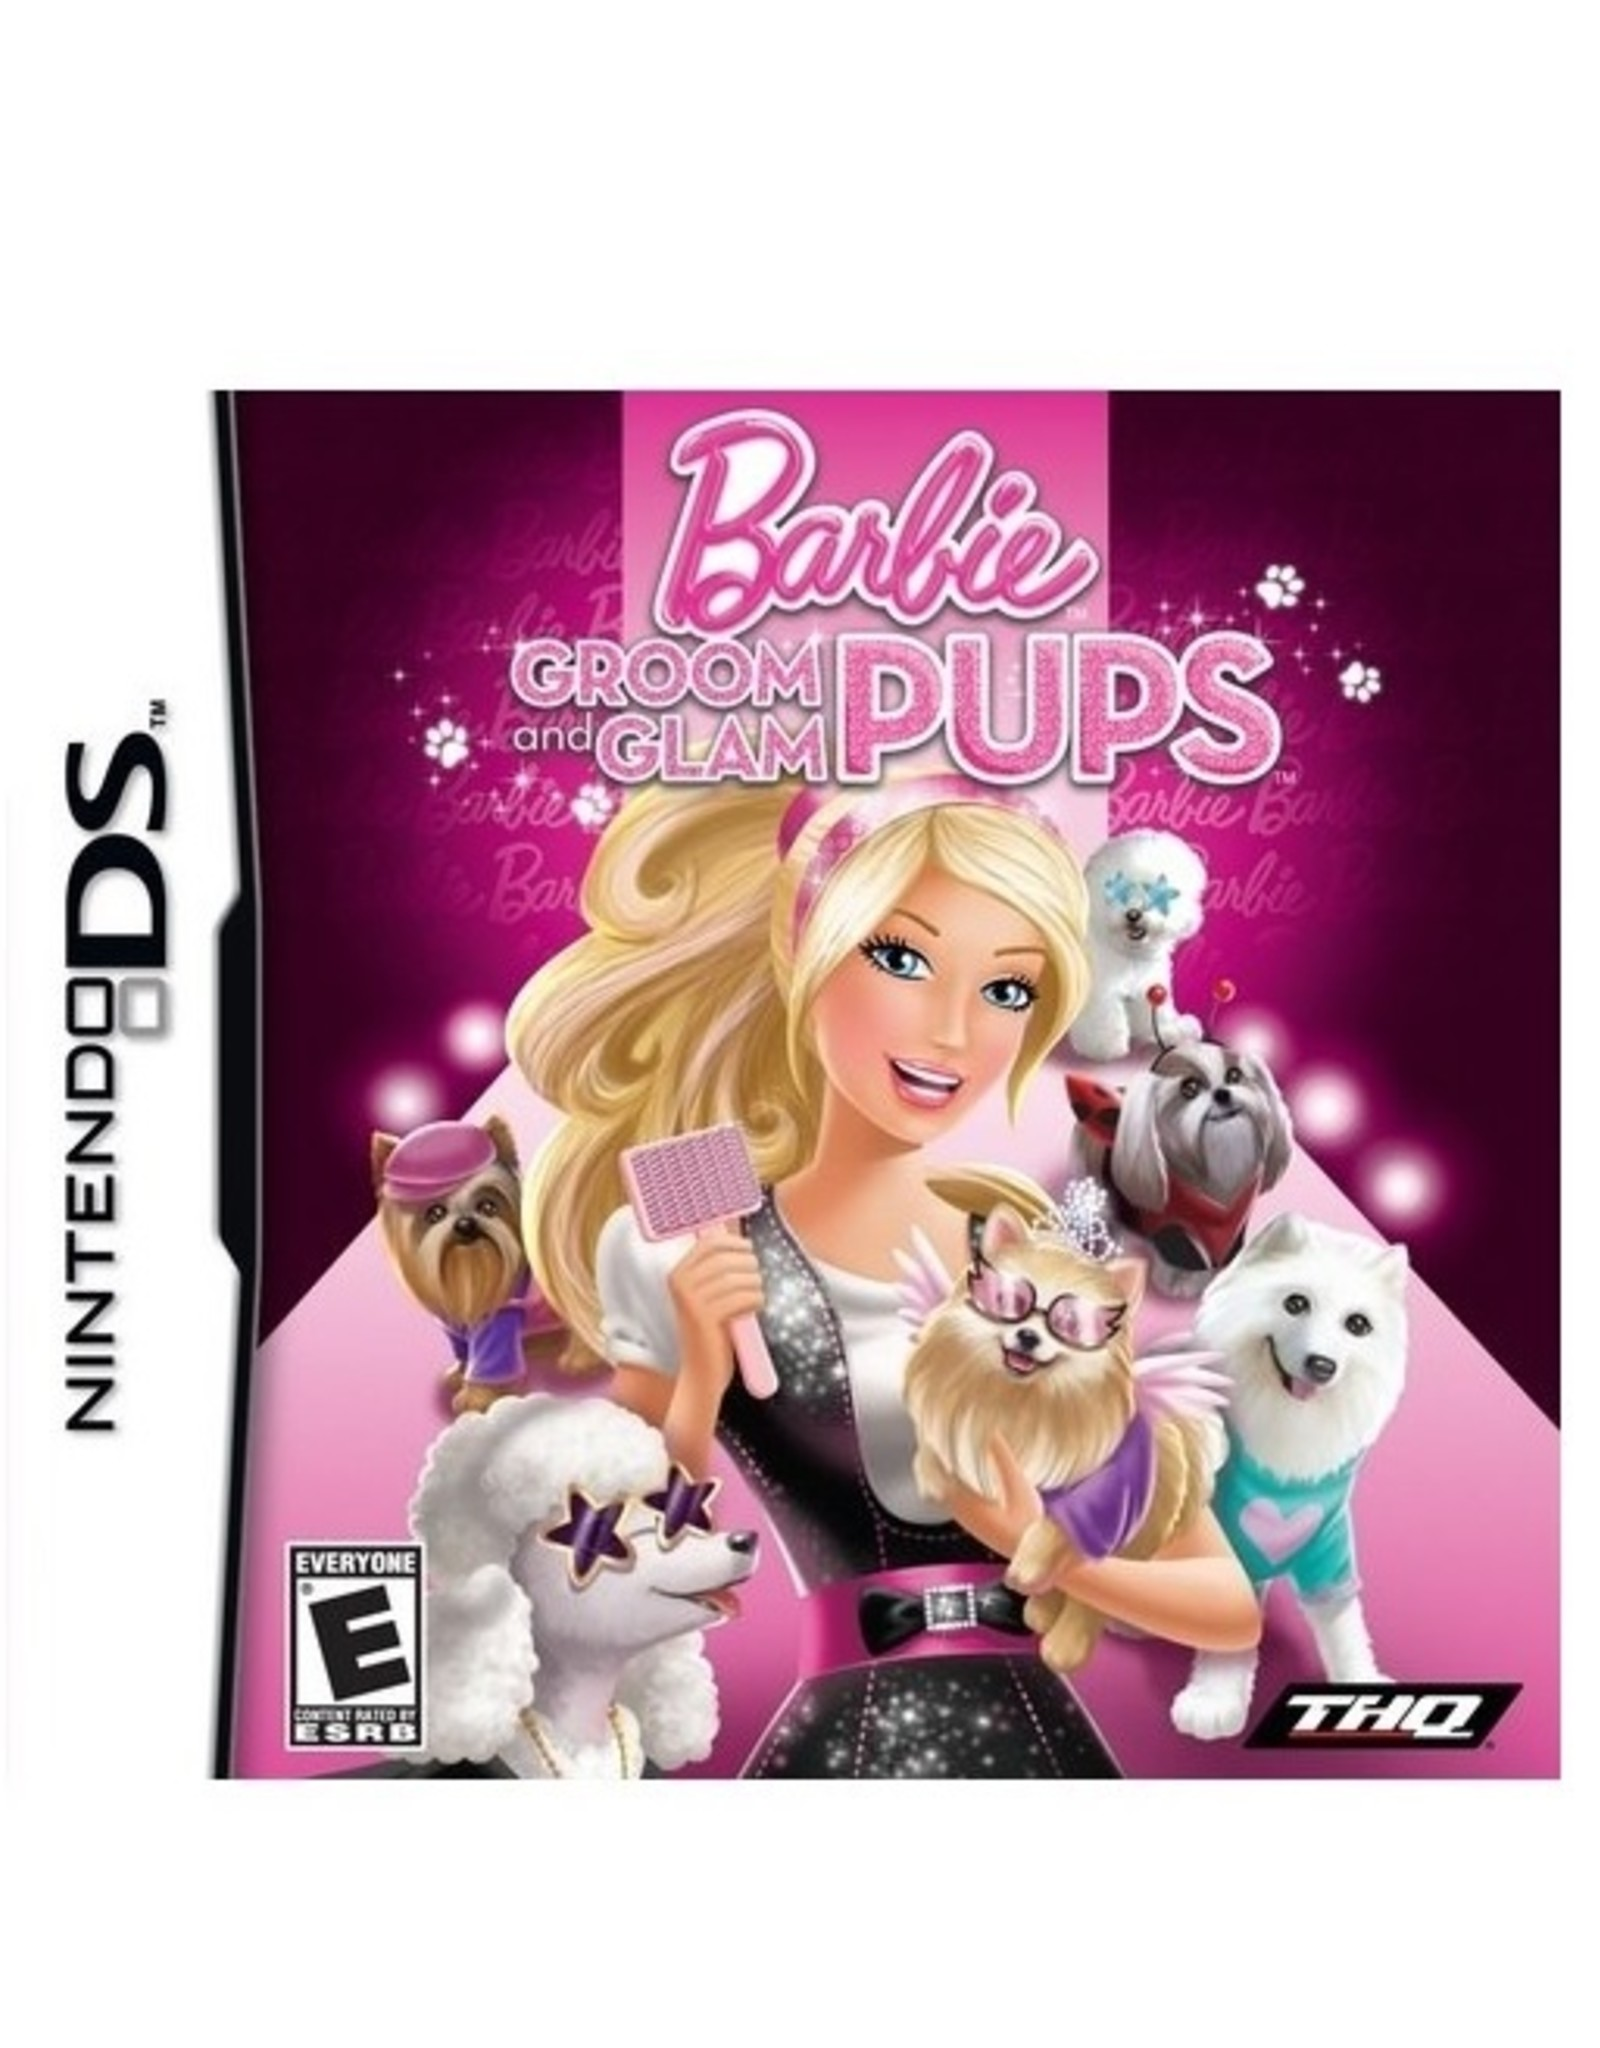 barbie: Groom and Glam Pups - NDS PrePlayed